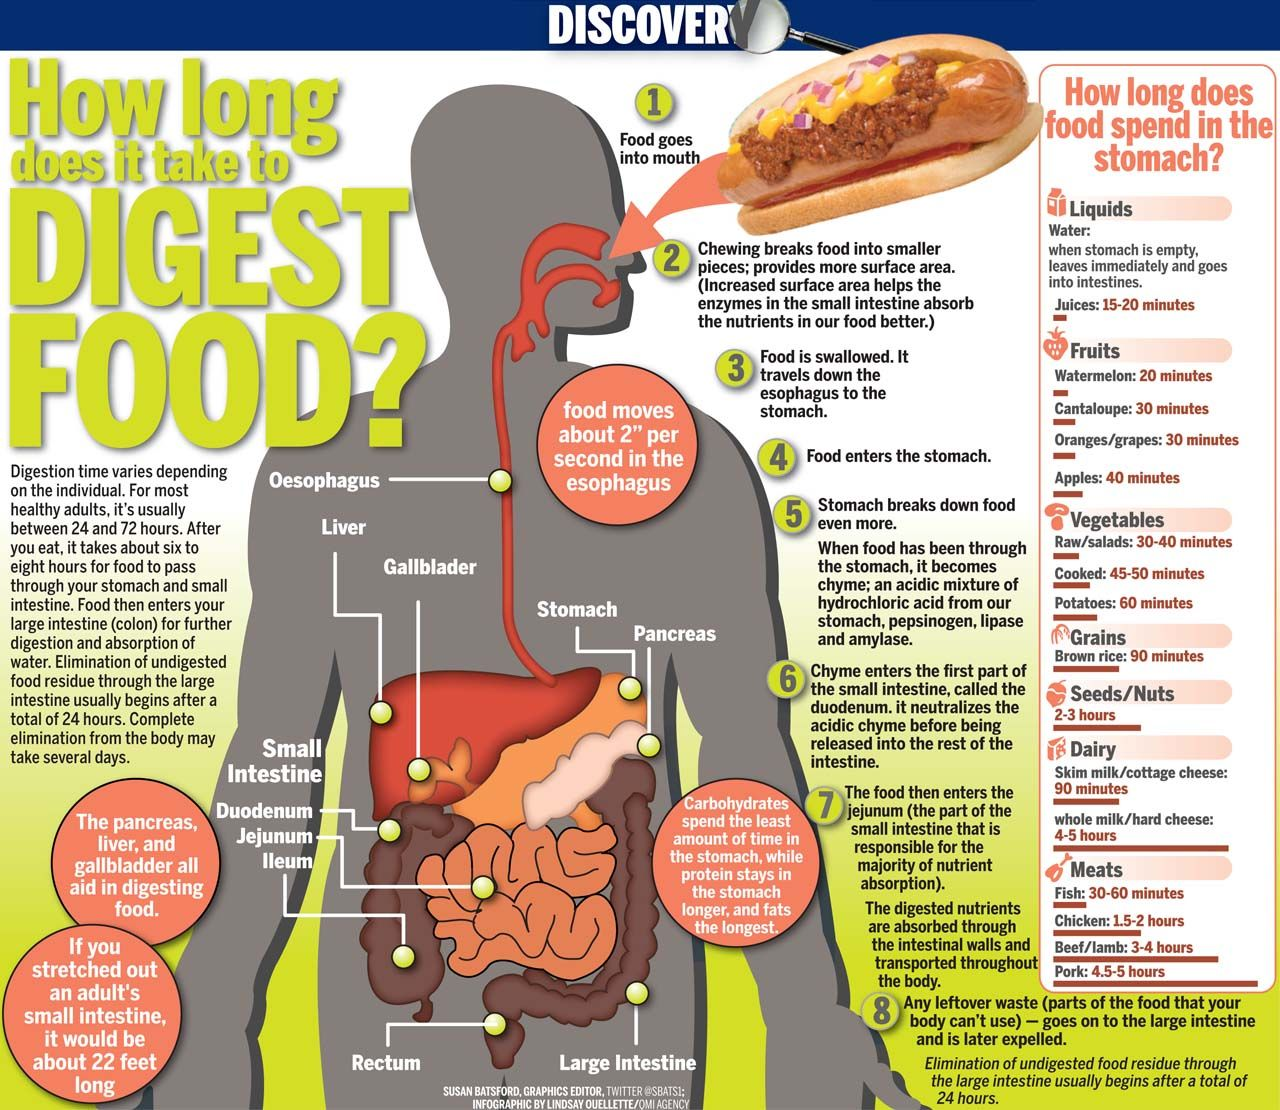 milk and meat digestion how does it take to digest food meats can take up 818